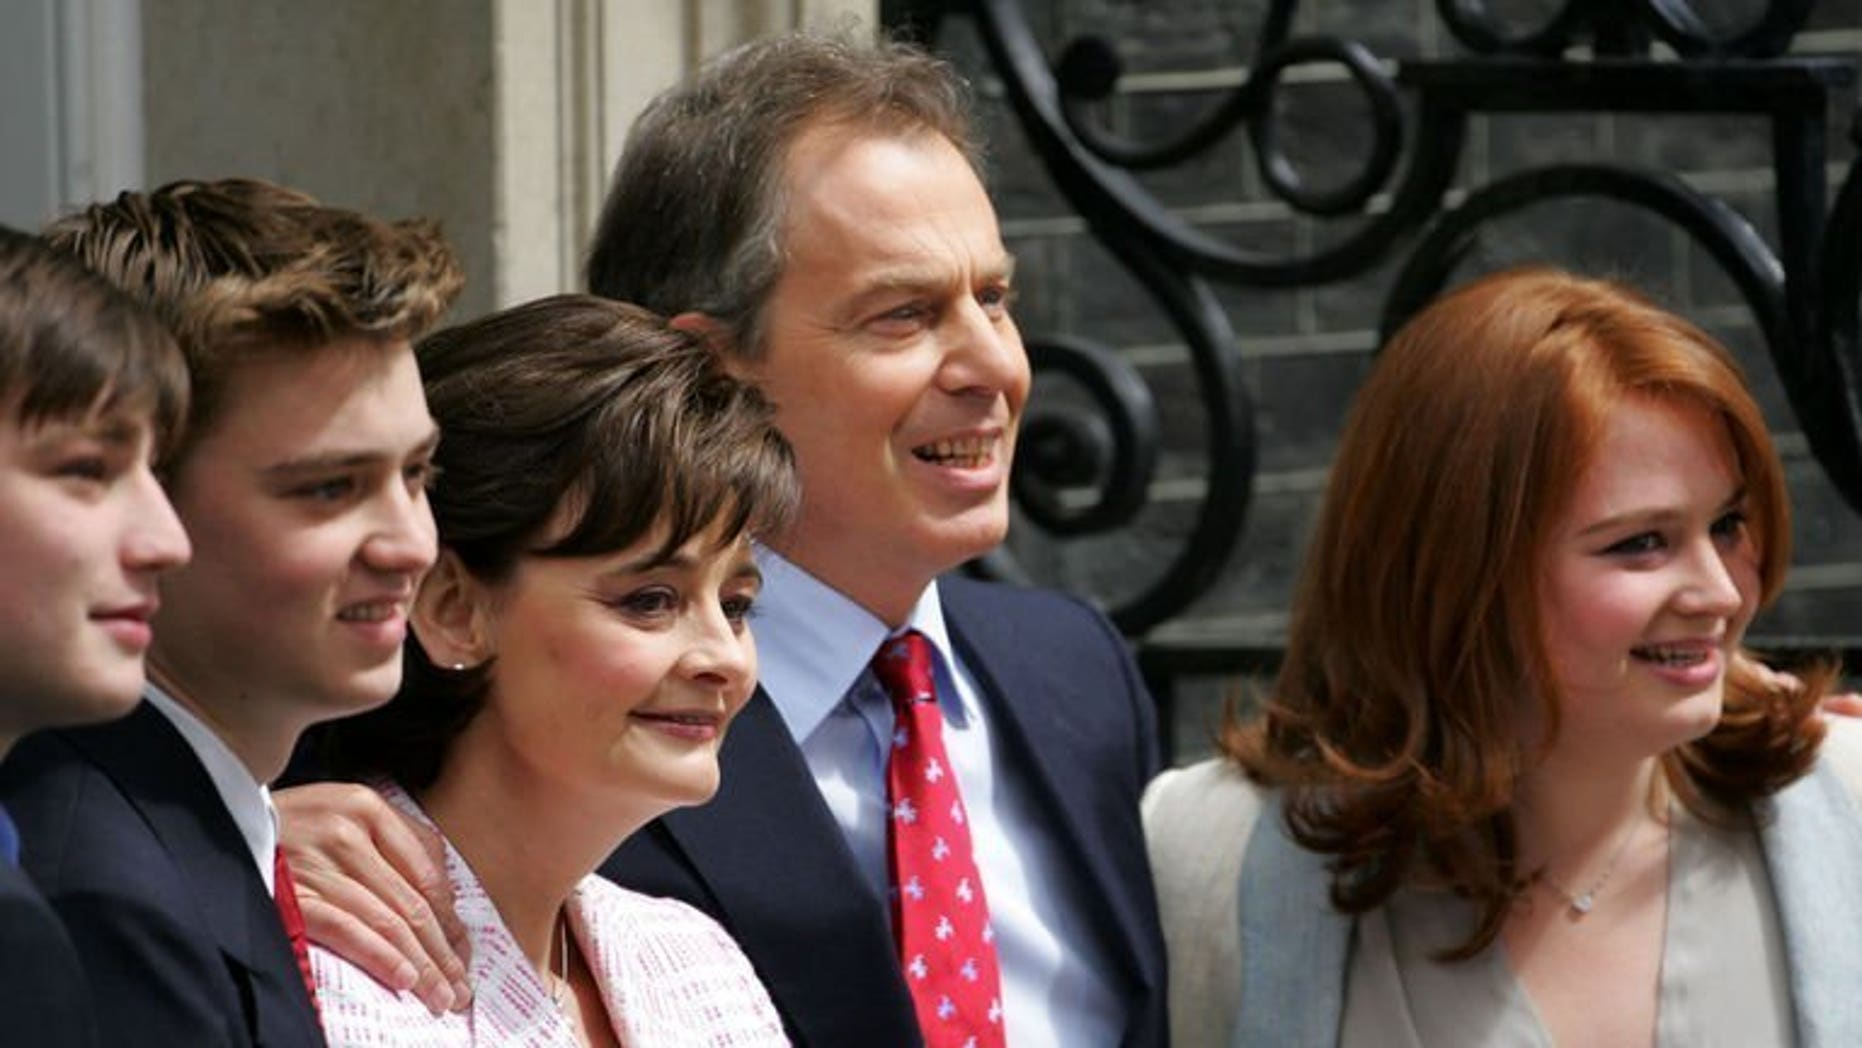 Then British Prime Minister Tony Blair stands with his sons Nicky (L), Euan (2nd L), wife Cherie and daughter Kathryn (R) at 10 Downing Street in London on May 6, 2005. Kathryn Blair has been held at gunpoint in an attempted armed robbery in central London.